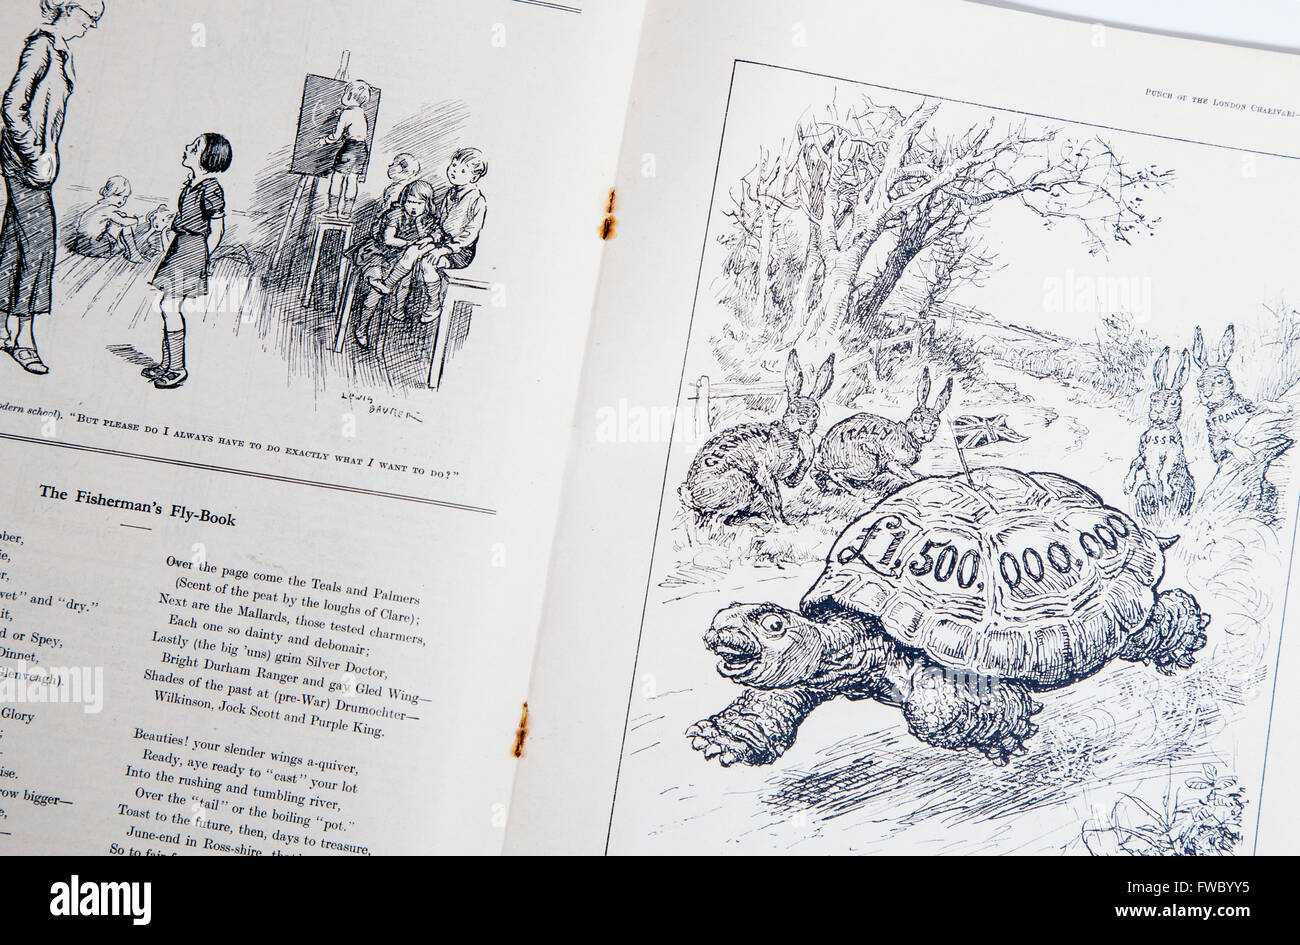 1930s Punch magazine showing inside pages and cartoons - Stock Image